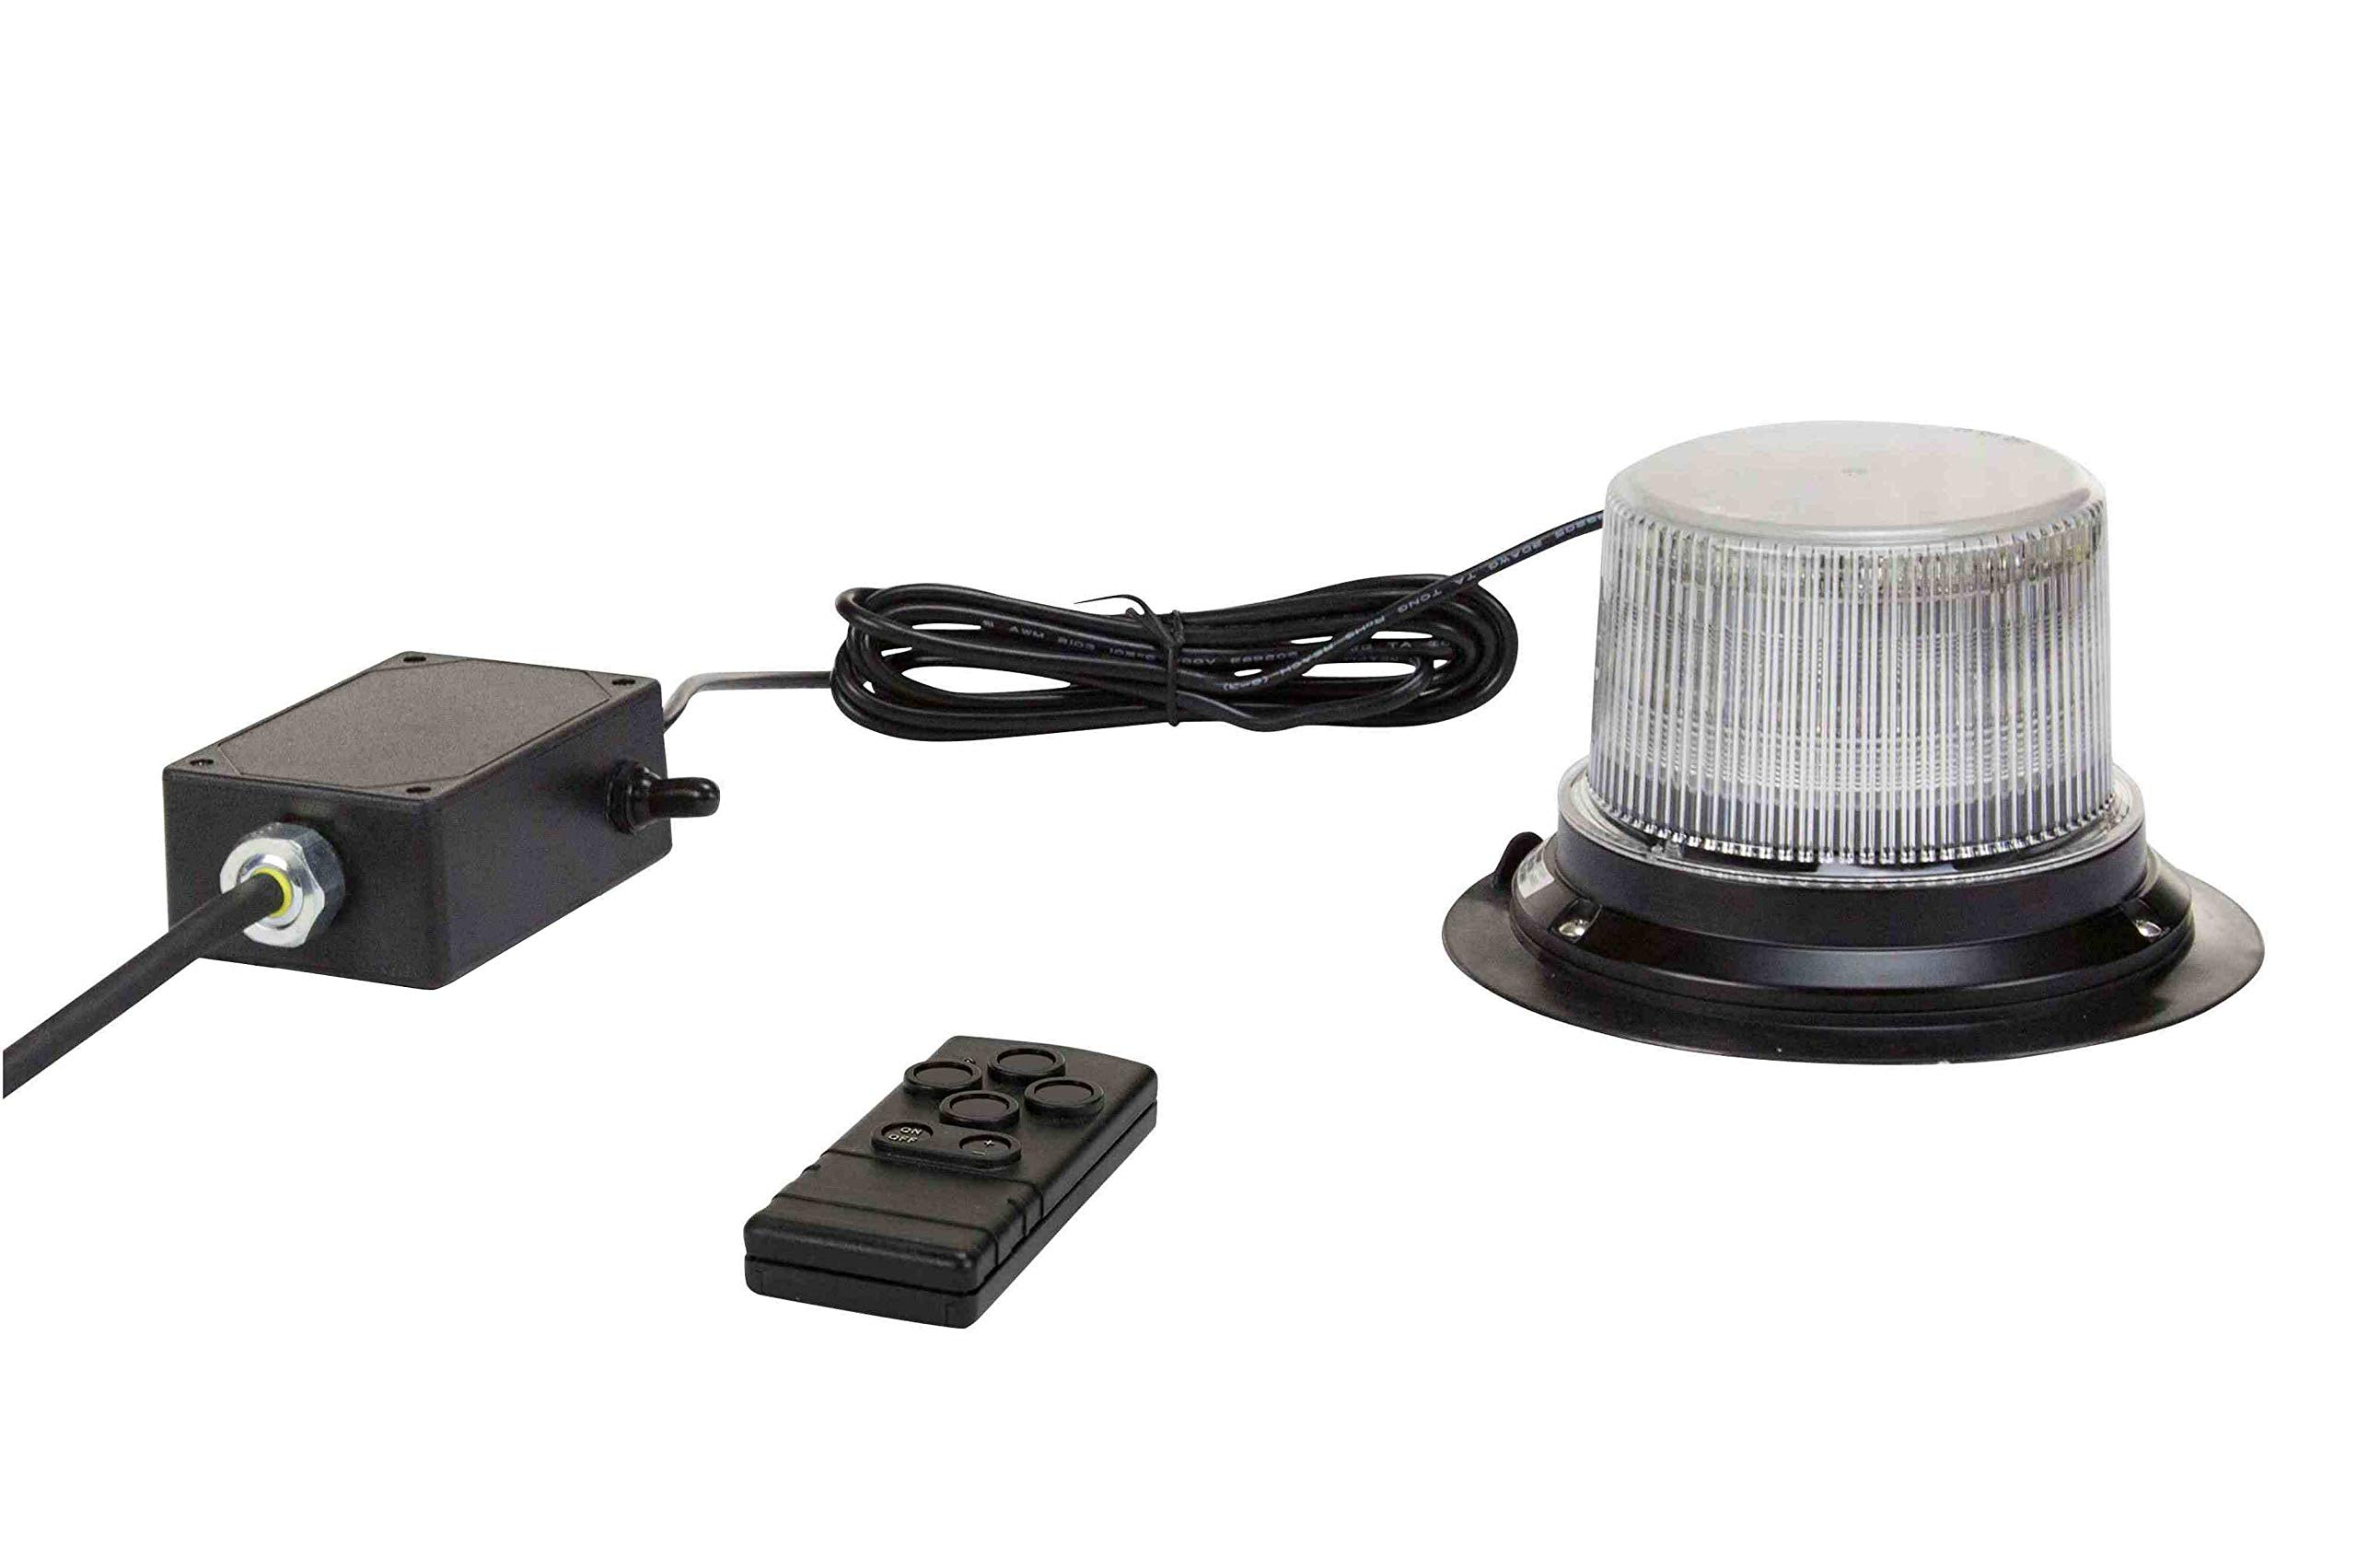 Class 1 LED Beacon with 30 Strobe Light Patterns - Wireless Remote - Surface Mount